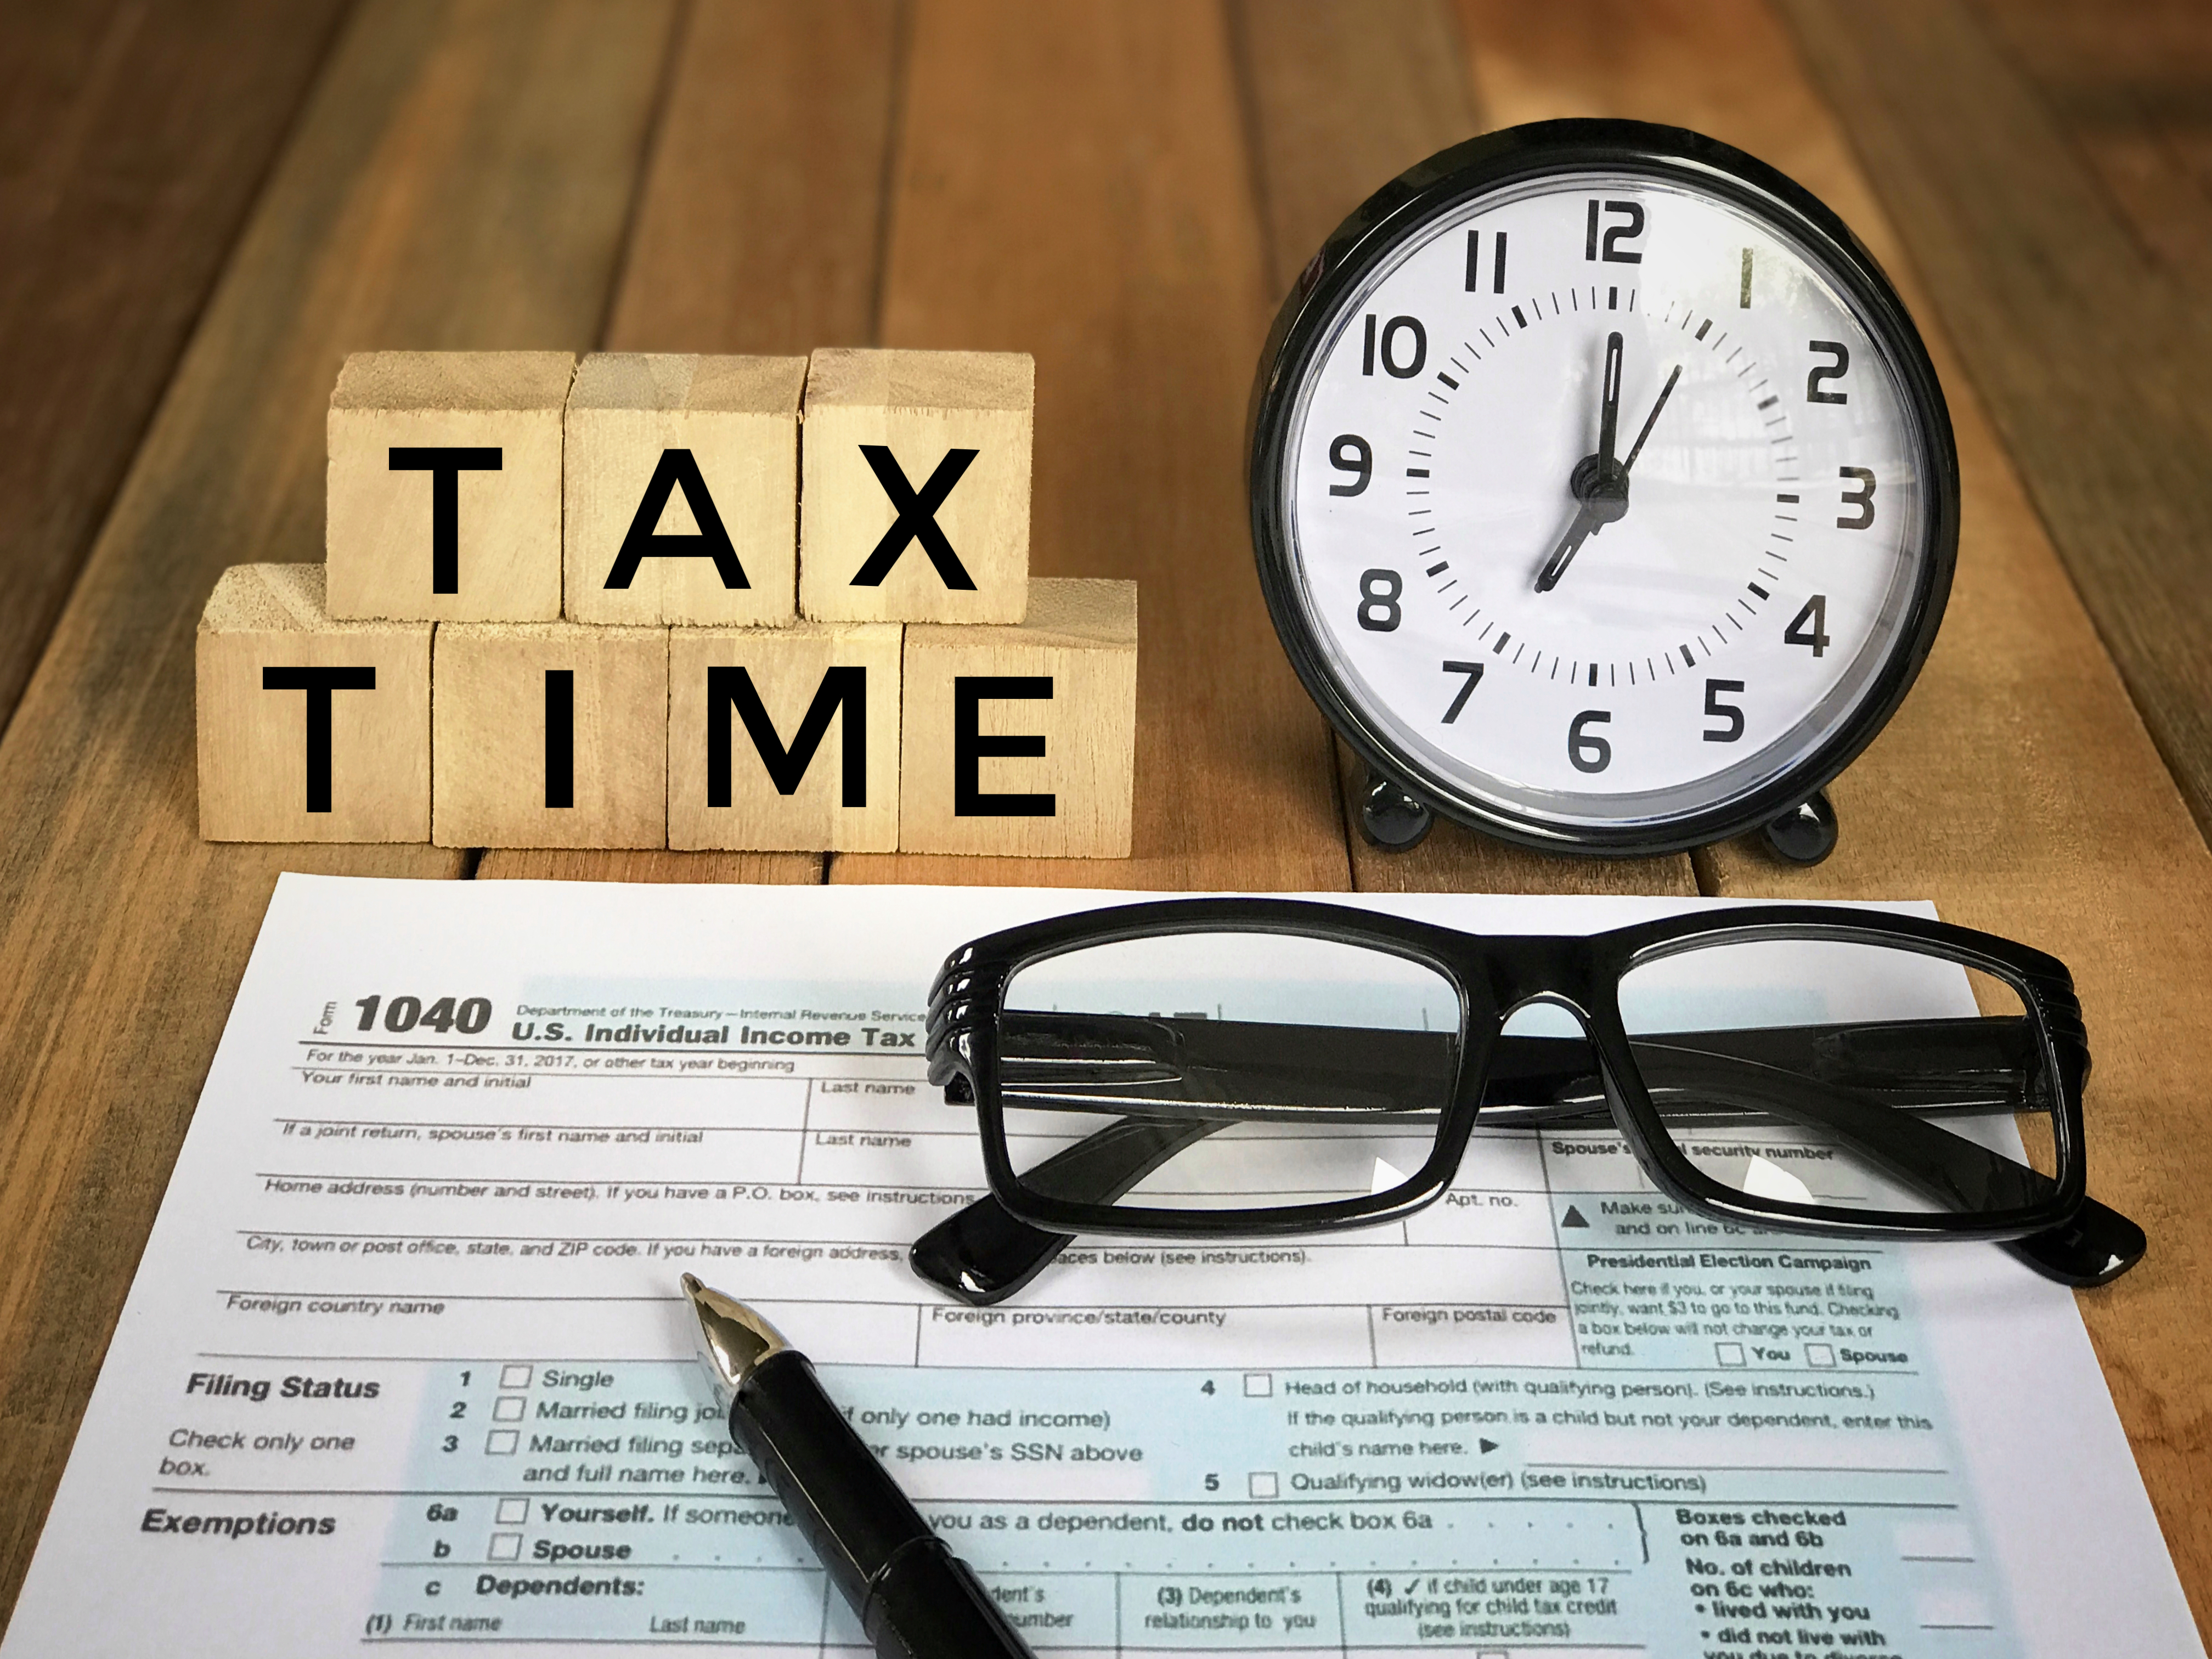 Tax Return Filing Do's and Don'ts